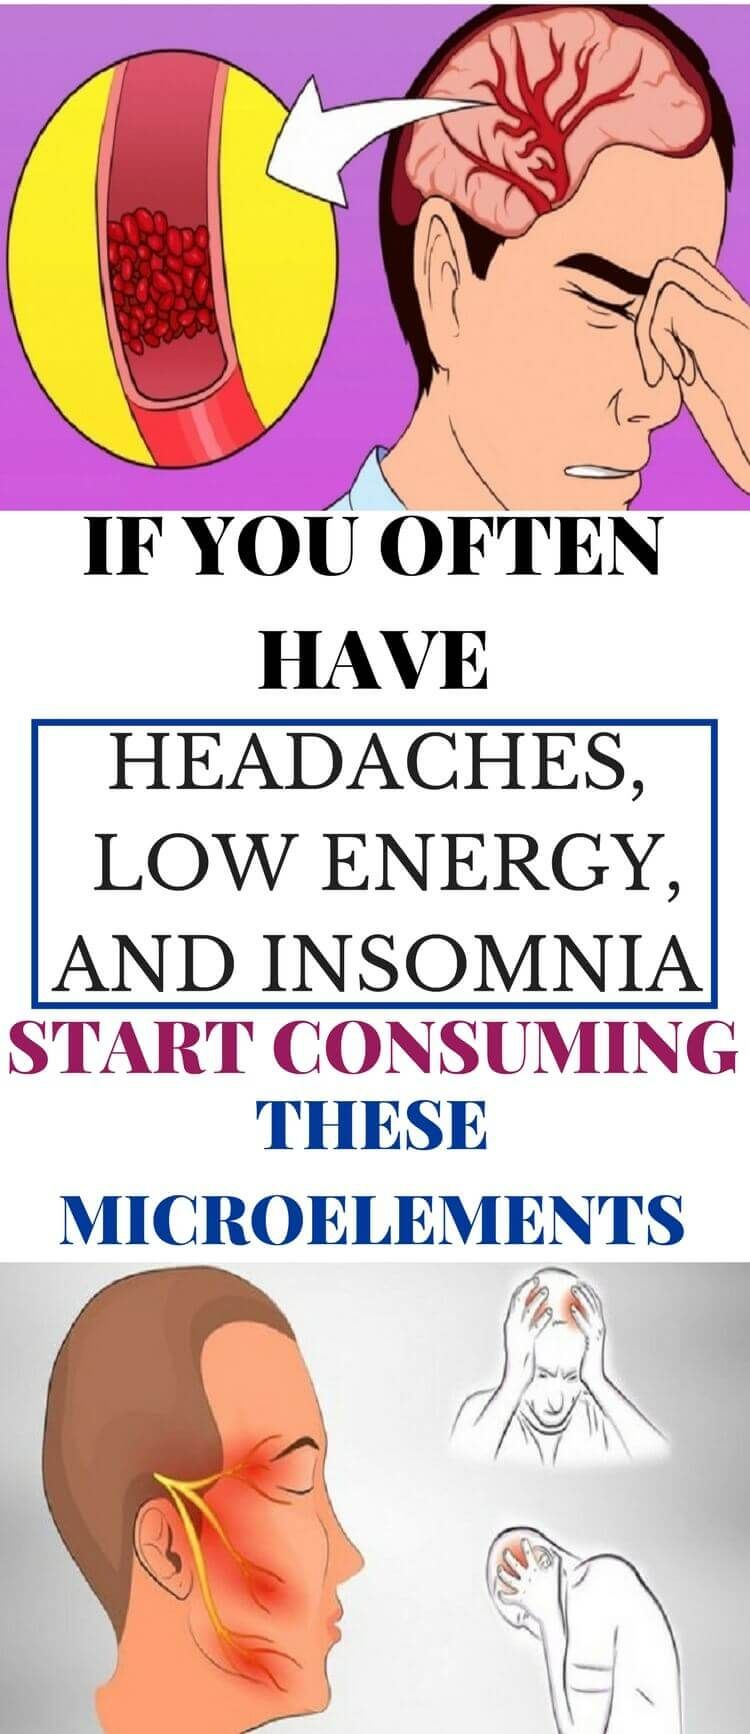 foto IfYou Often Have Headaches, Low Energy, and Insomnia, Start Consuming These